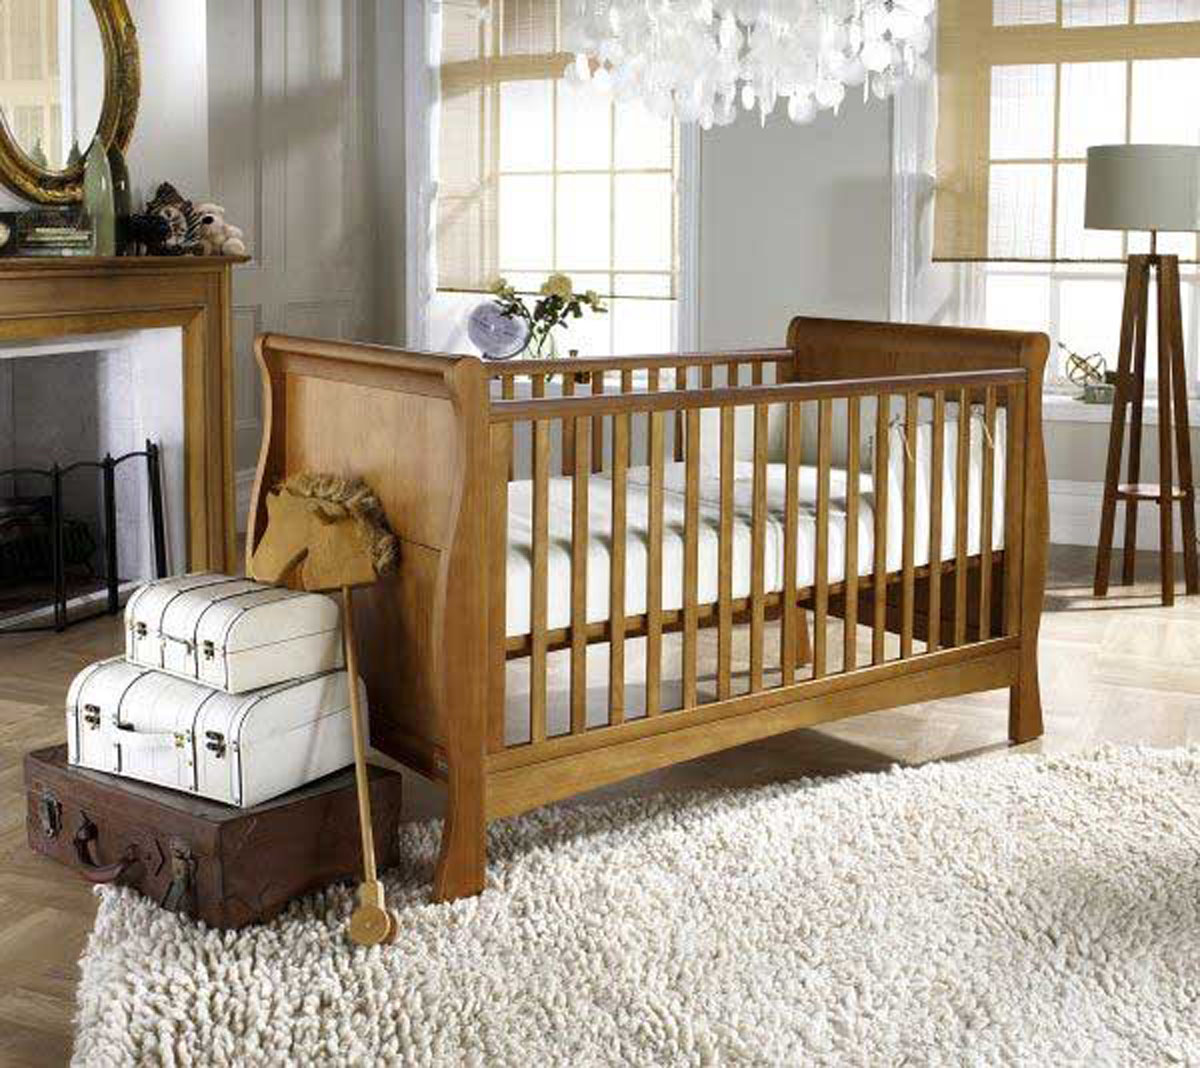 ������ ����� ٢٠١٤ ����� ������ baby-room-ideas-19.jpg